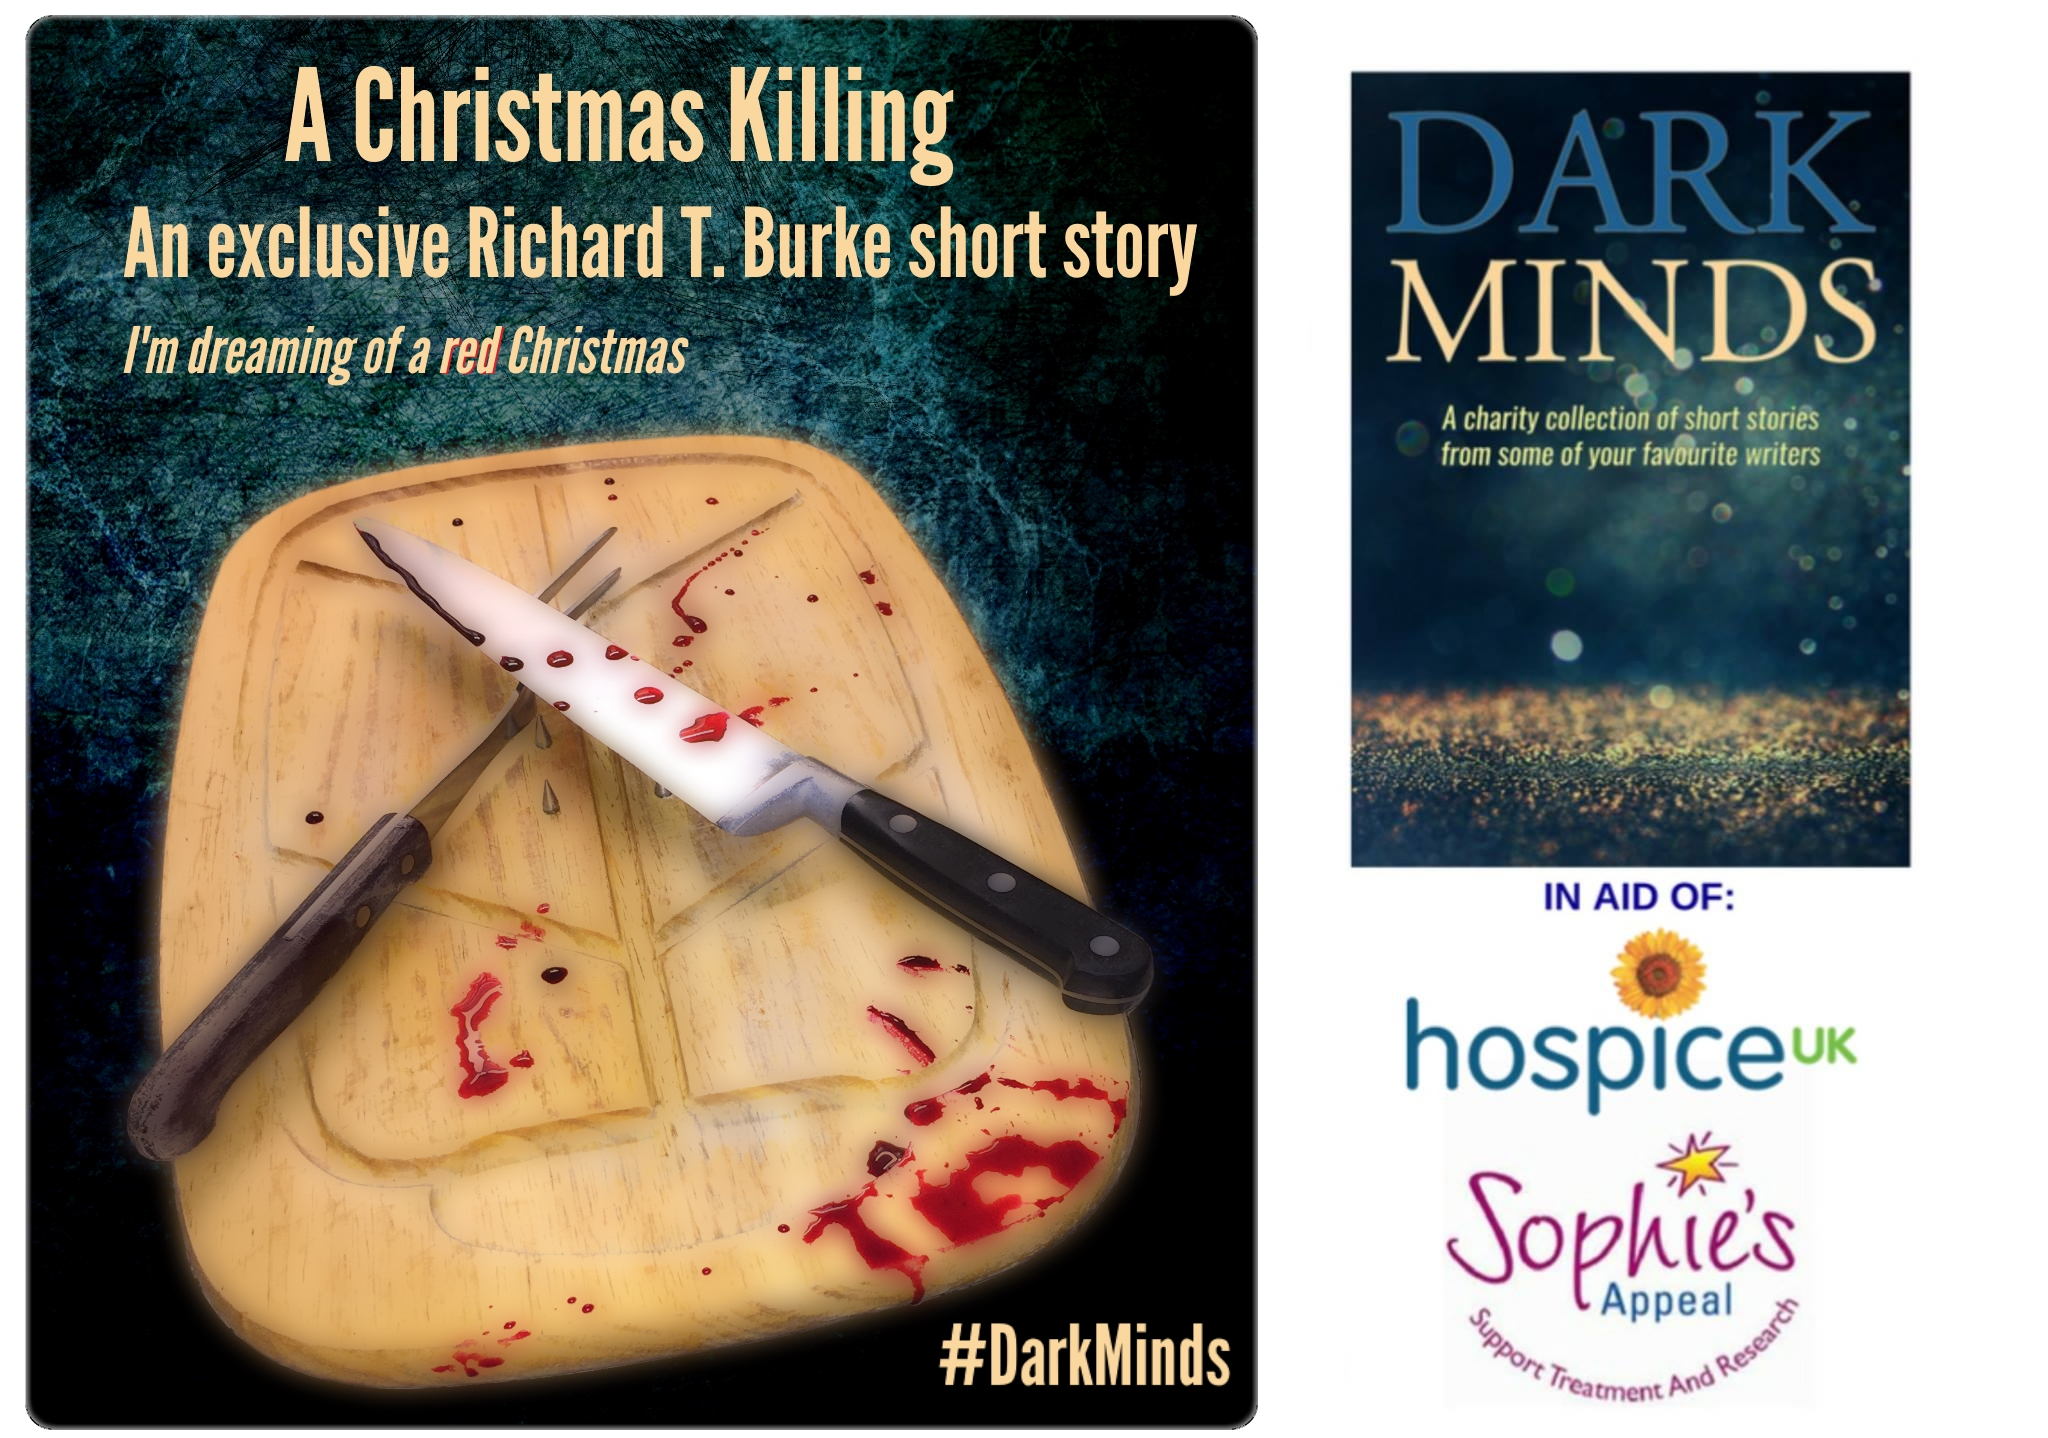 Dark Minds featuring A Christmas Killing